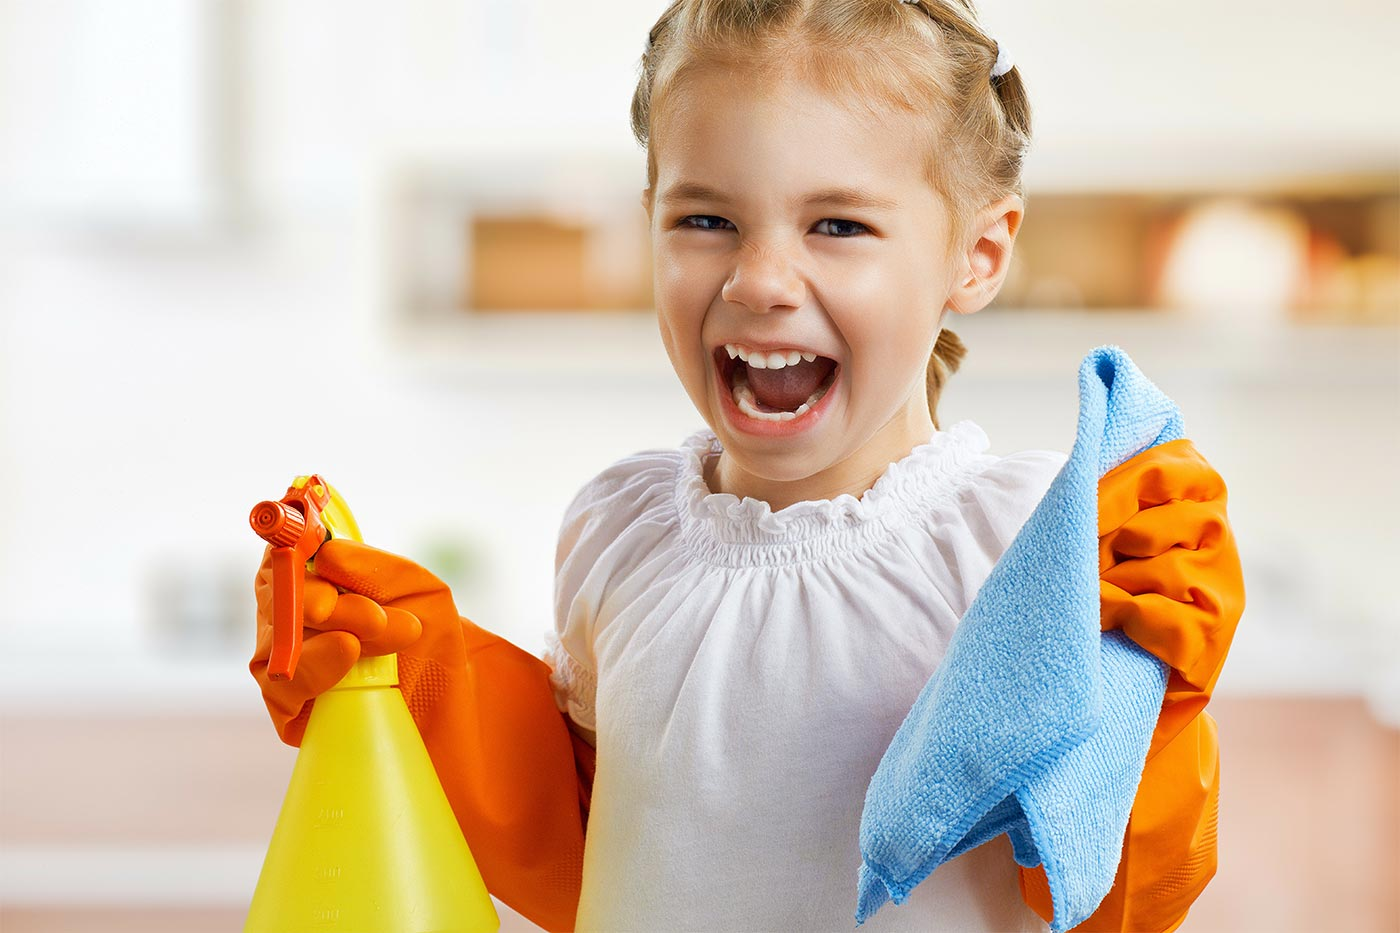 Should kids have chores? Find out here!